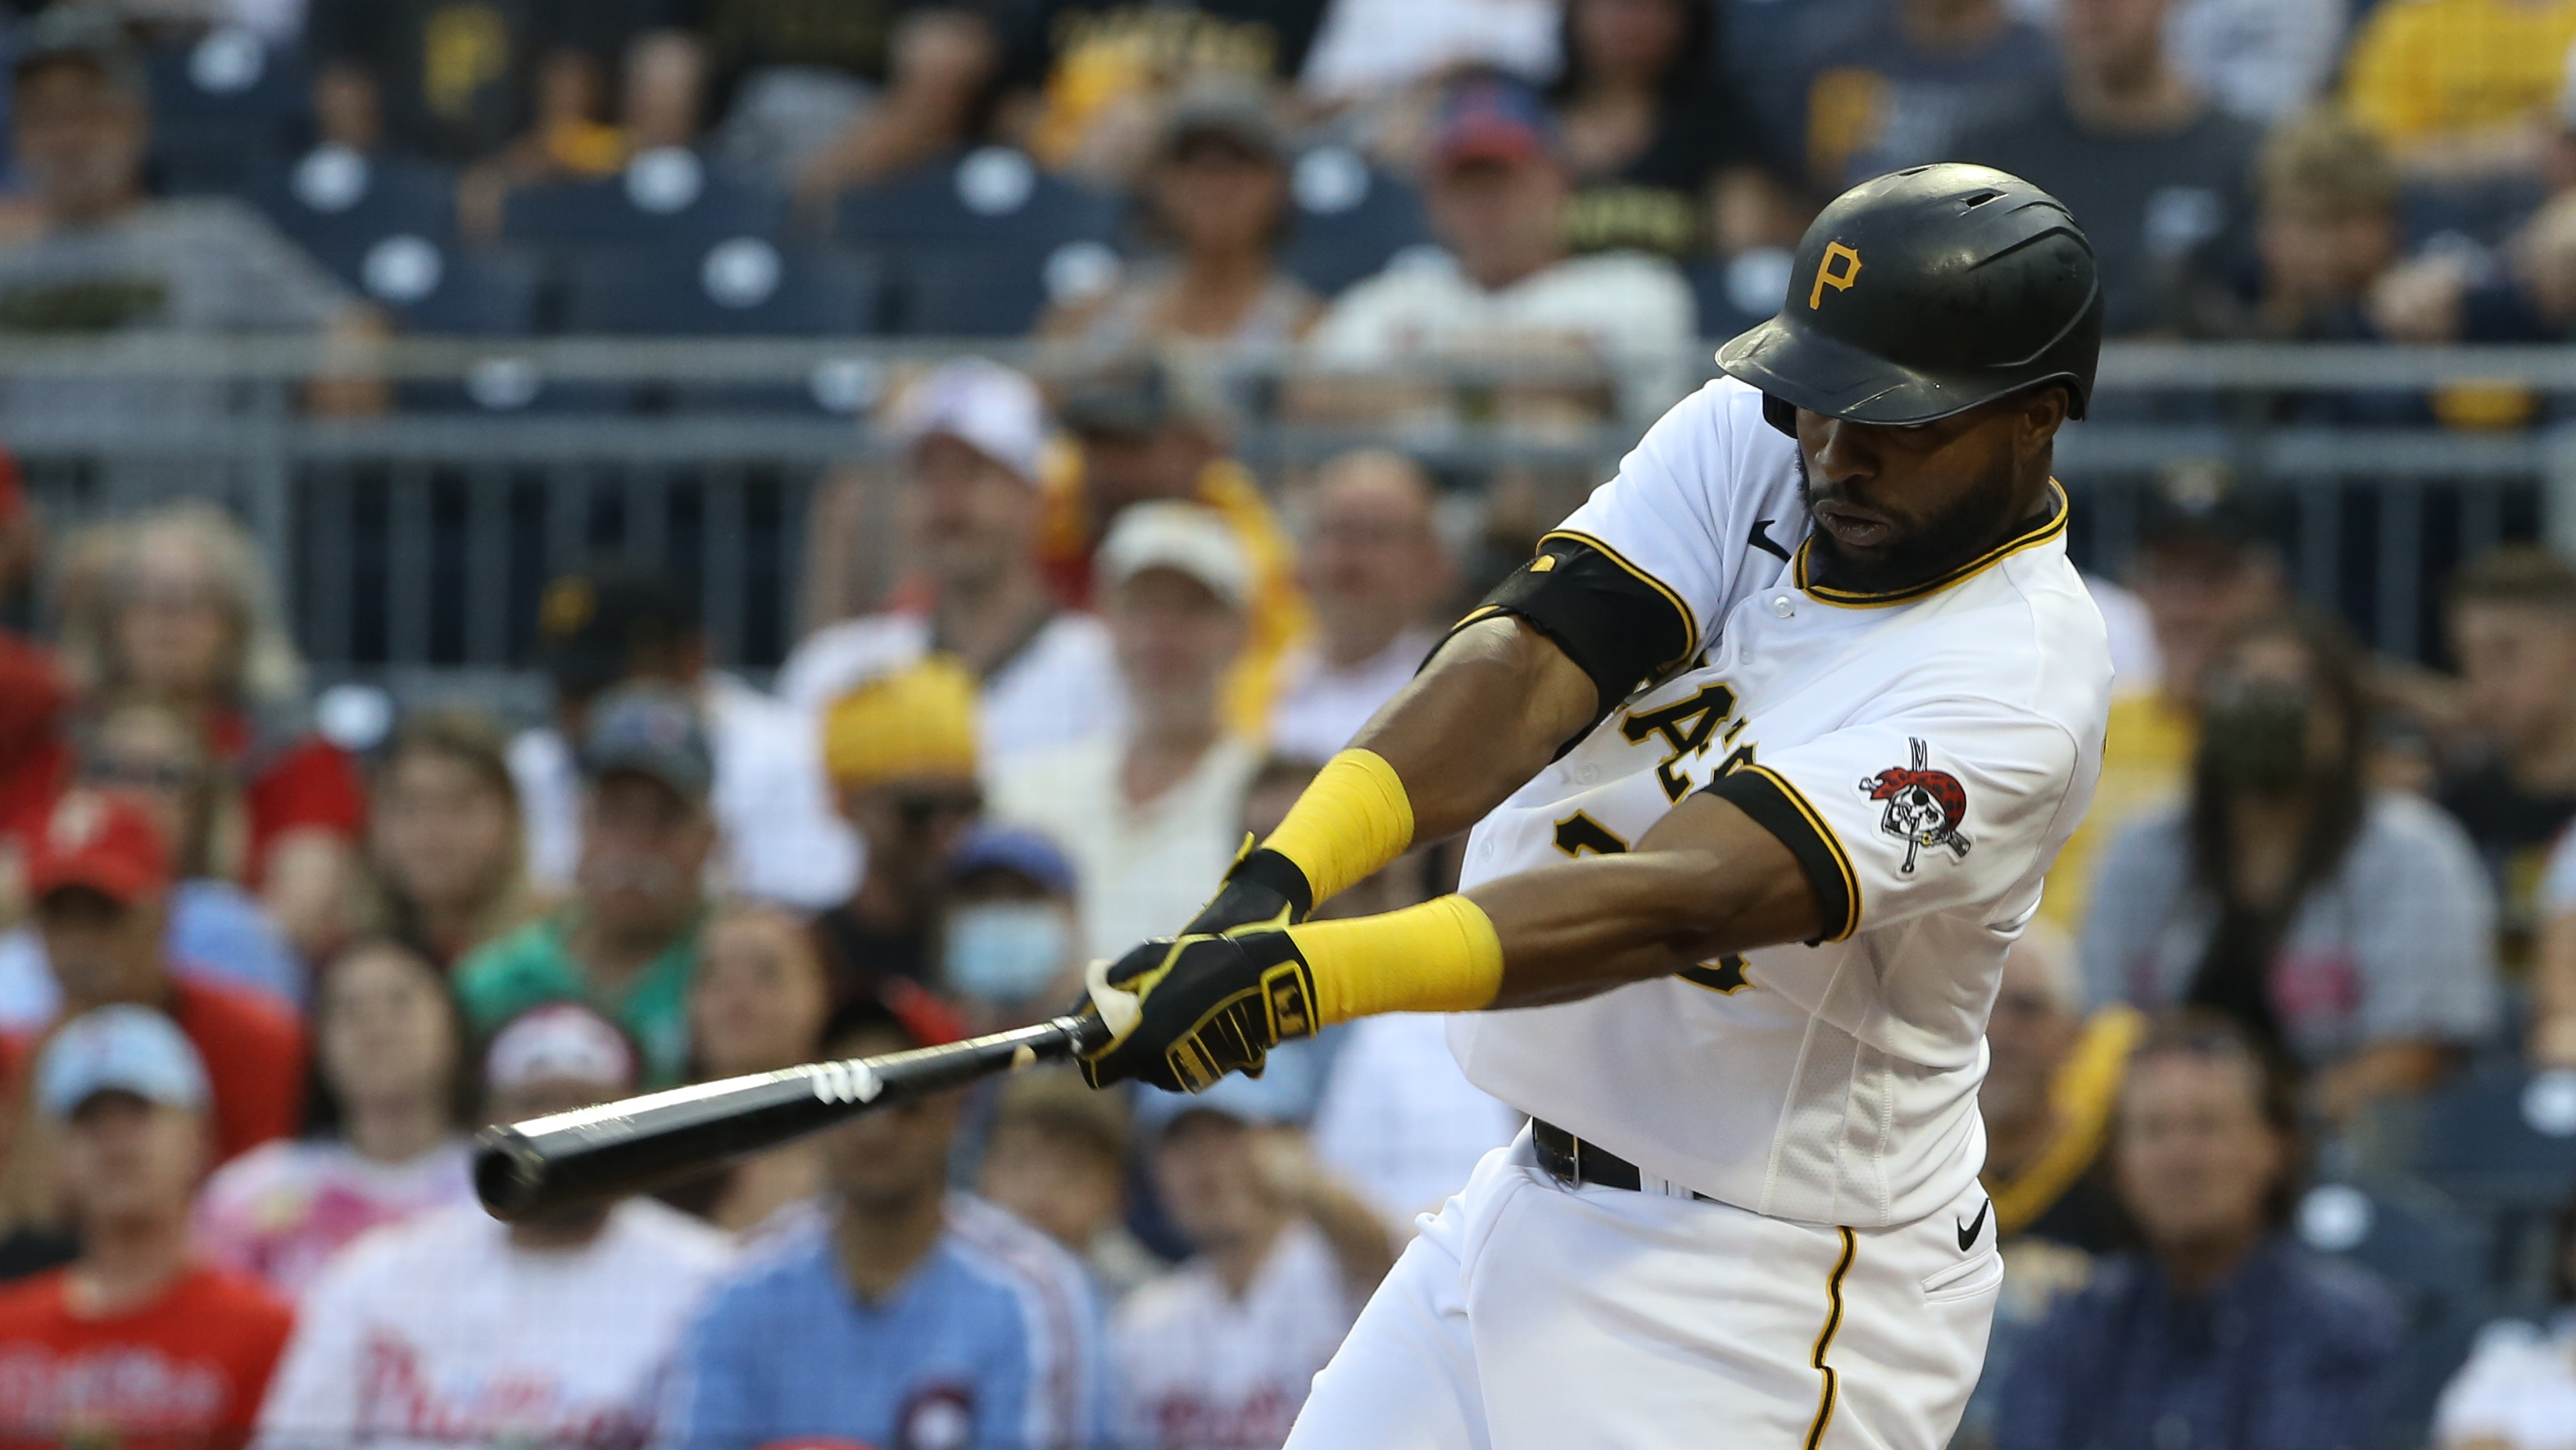 Jul 30, 2021; Pittsburgh, Pennsylvania, USA;  Pittsburgh Pirates right fielder Gregory Polanco (25) hits an RBI single against the Philadelphia Phillies during the first inning at PNC Park. Mandatory Credit: Charles LeClaire-USA TODAY Sports